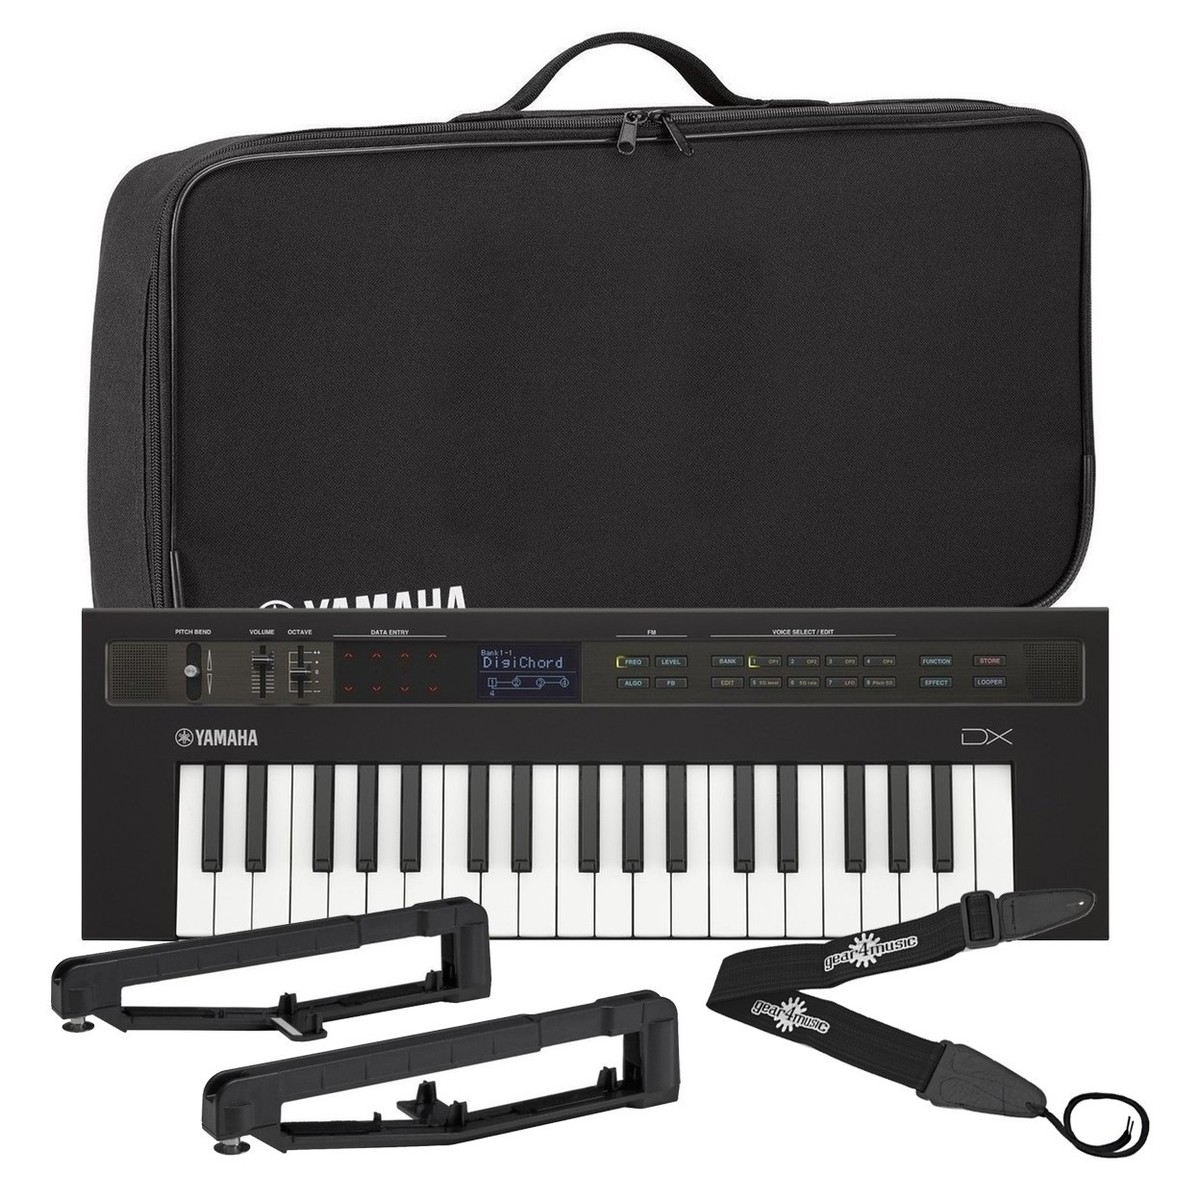 yamaha reface dx synthesizer with yamaha bag strap kit. Black Bedroom Furniture Sets. Home Design Ideas